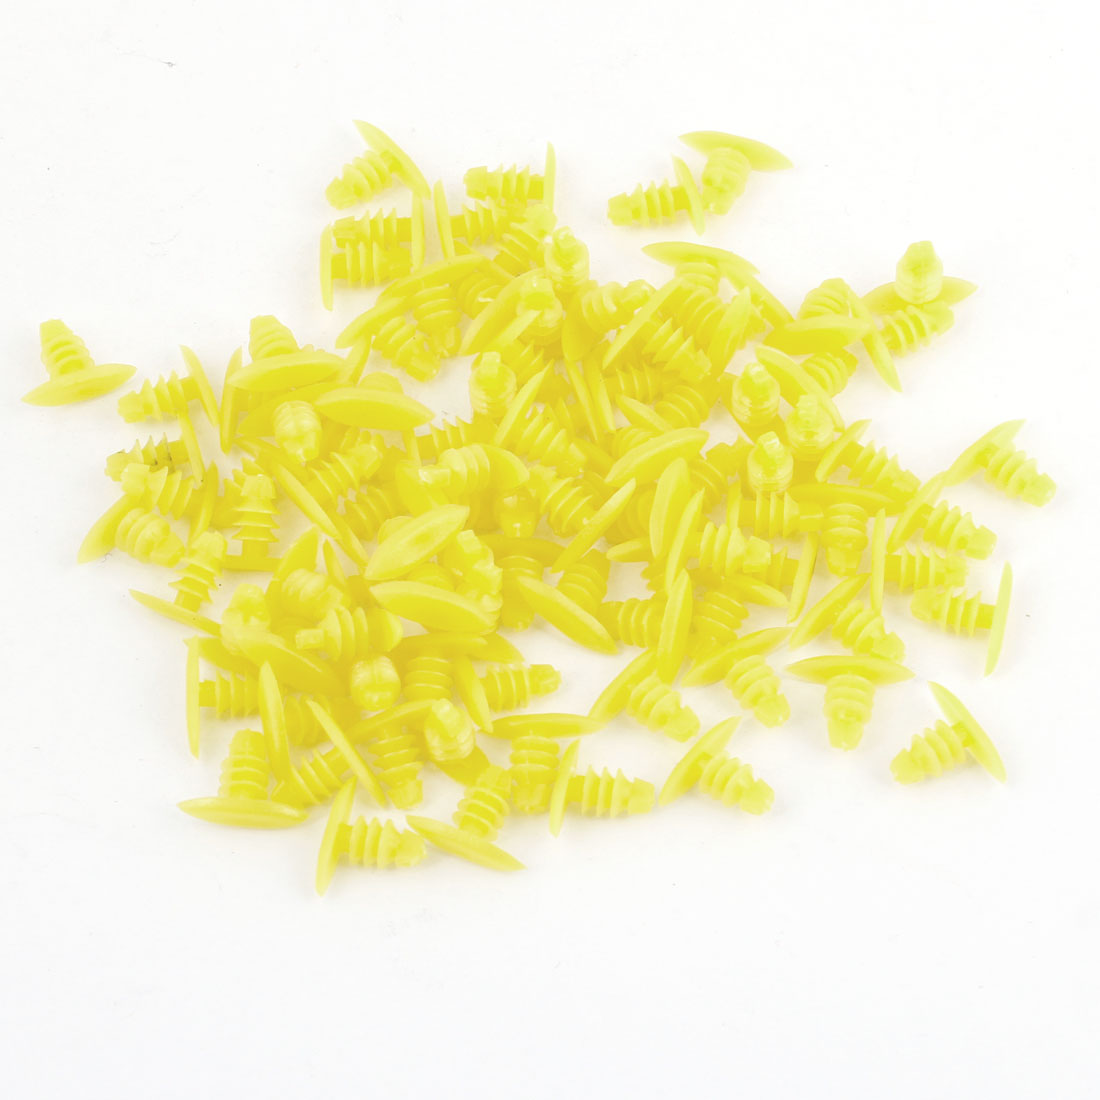 Auto Truck Door Fender 6.5mm Hole Plastic Rivets Fastener Yellow x 100